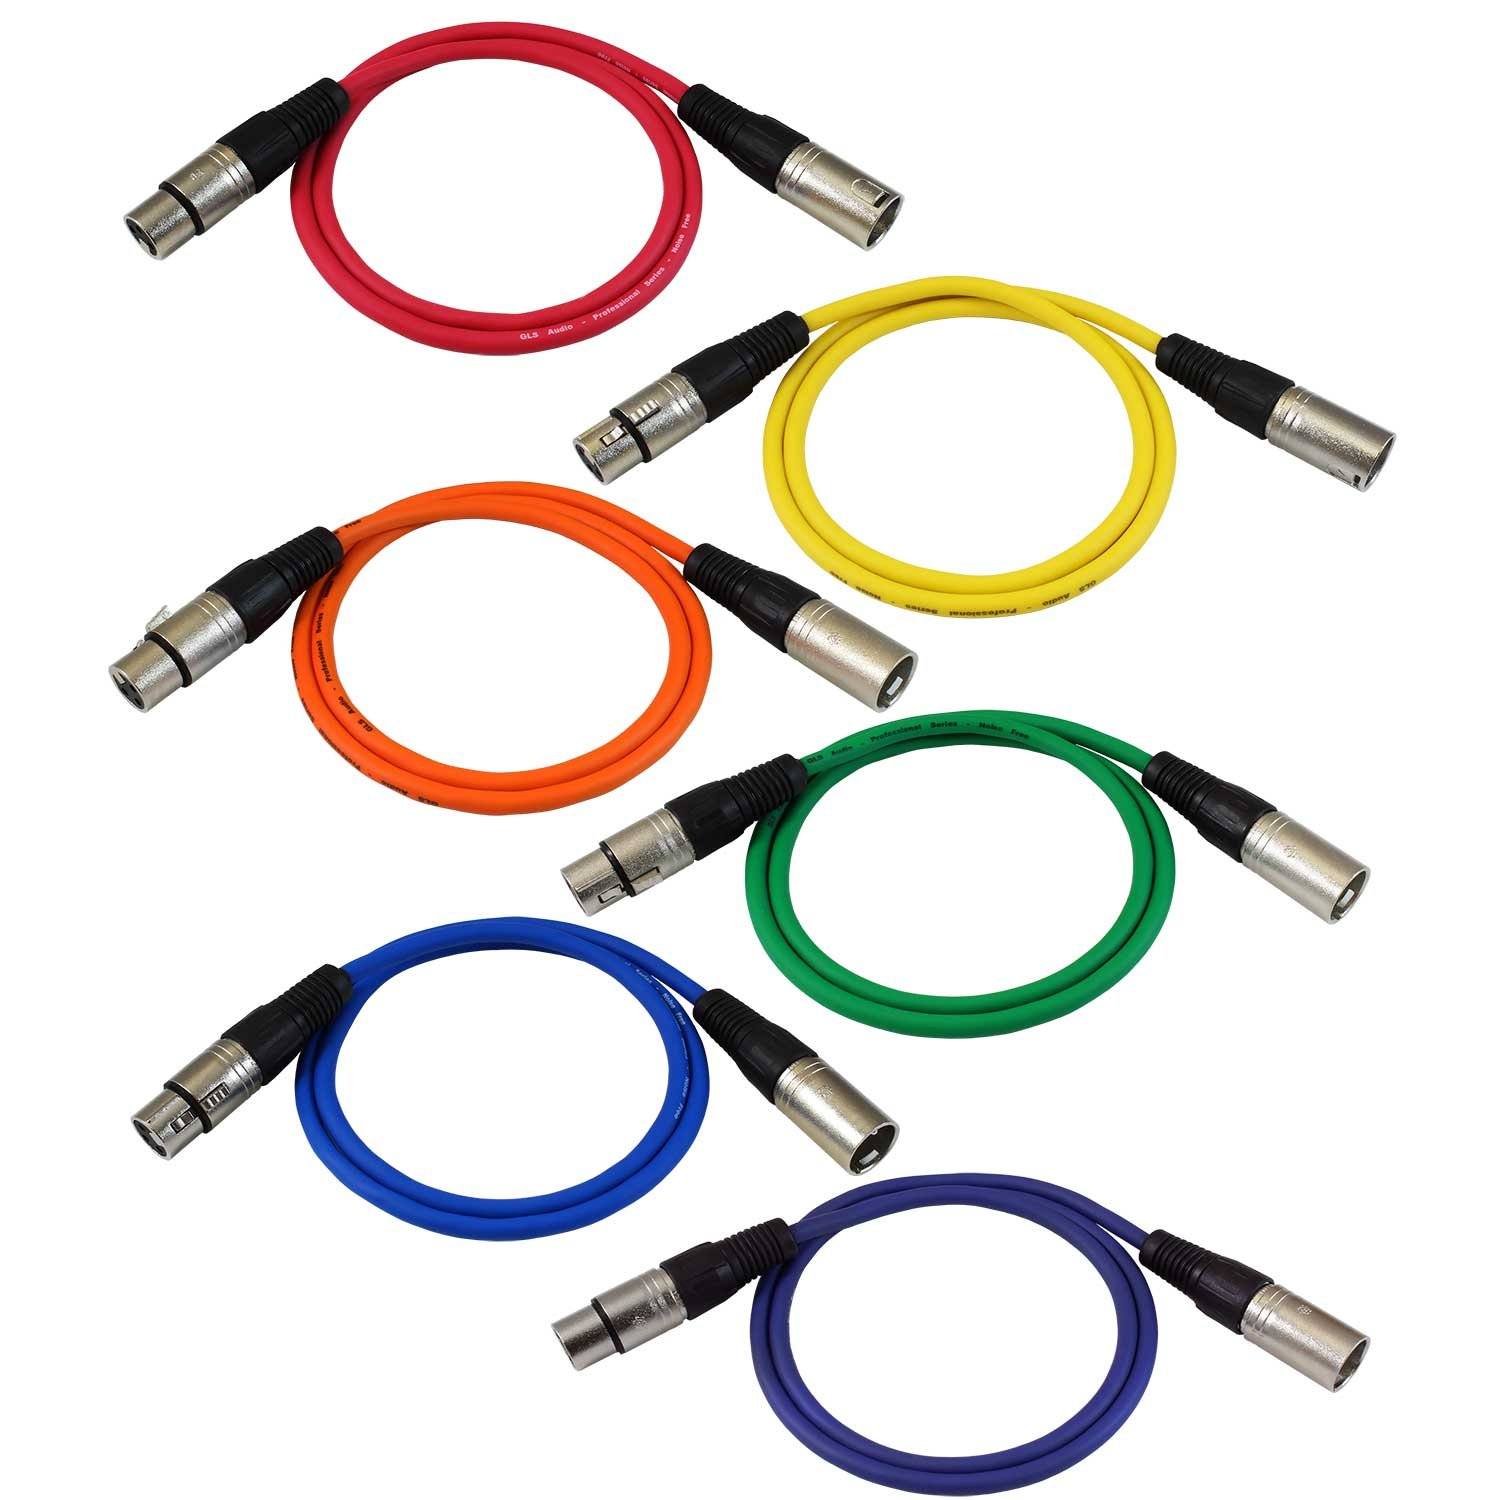 GLS Audio 3ft Patch Cable Cords - XLR Male To XLR Female Color Cables - 3' Balanced Snake Cord - 6 PACK by GLS Audio